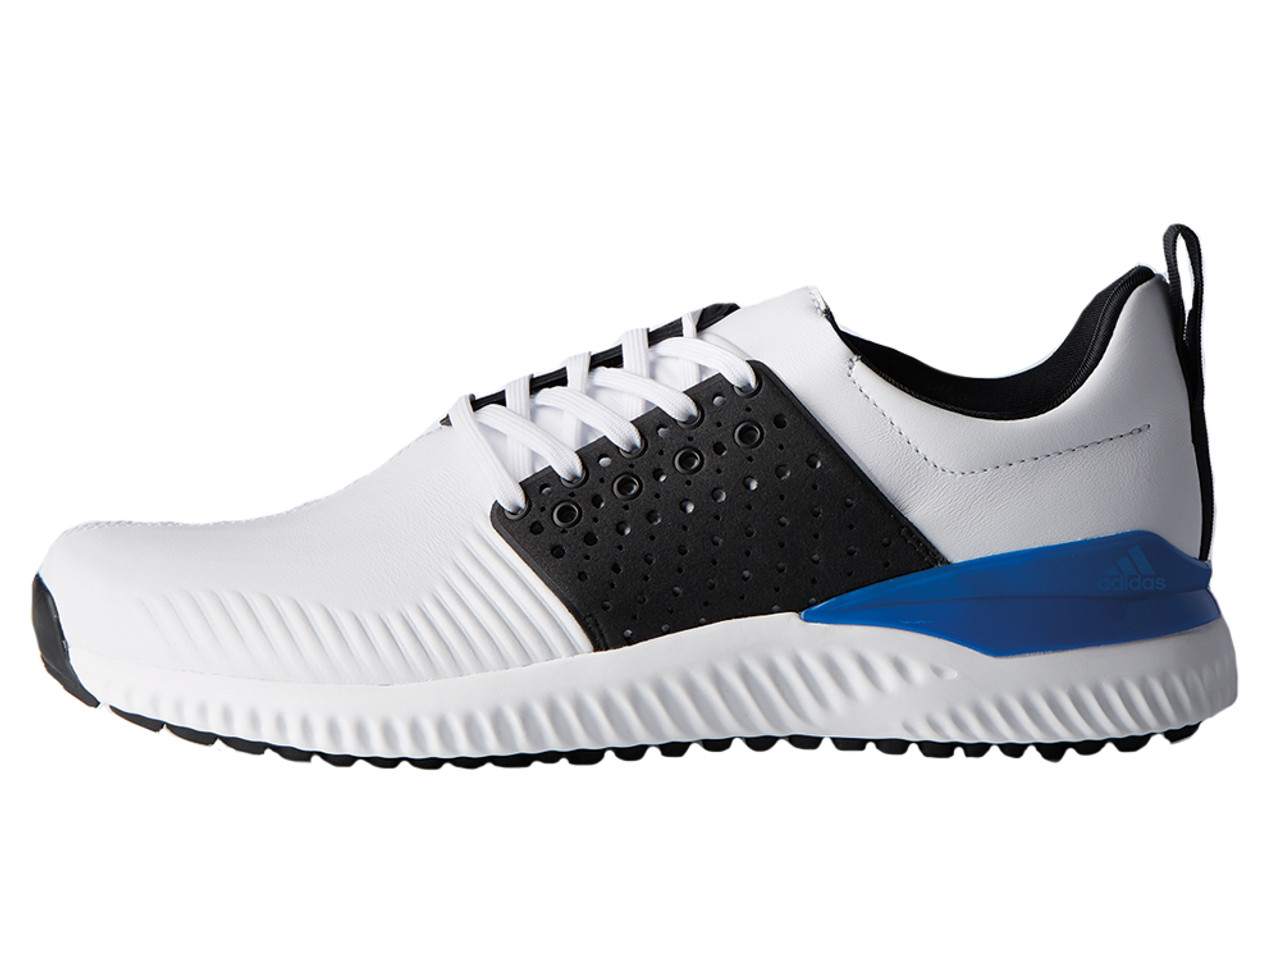 sale retailer f11f7 48d97 Adidas Adicross Bounce Leather Golf Shoes - White Black Blue